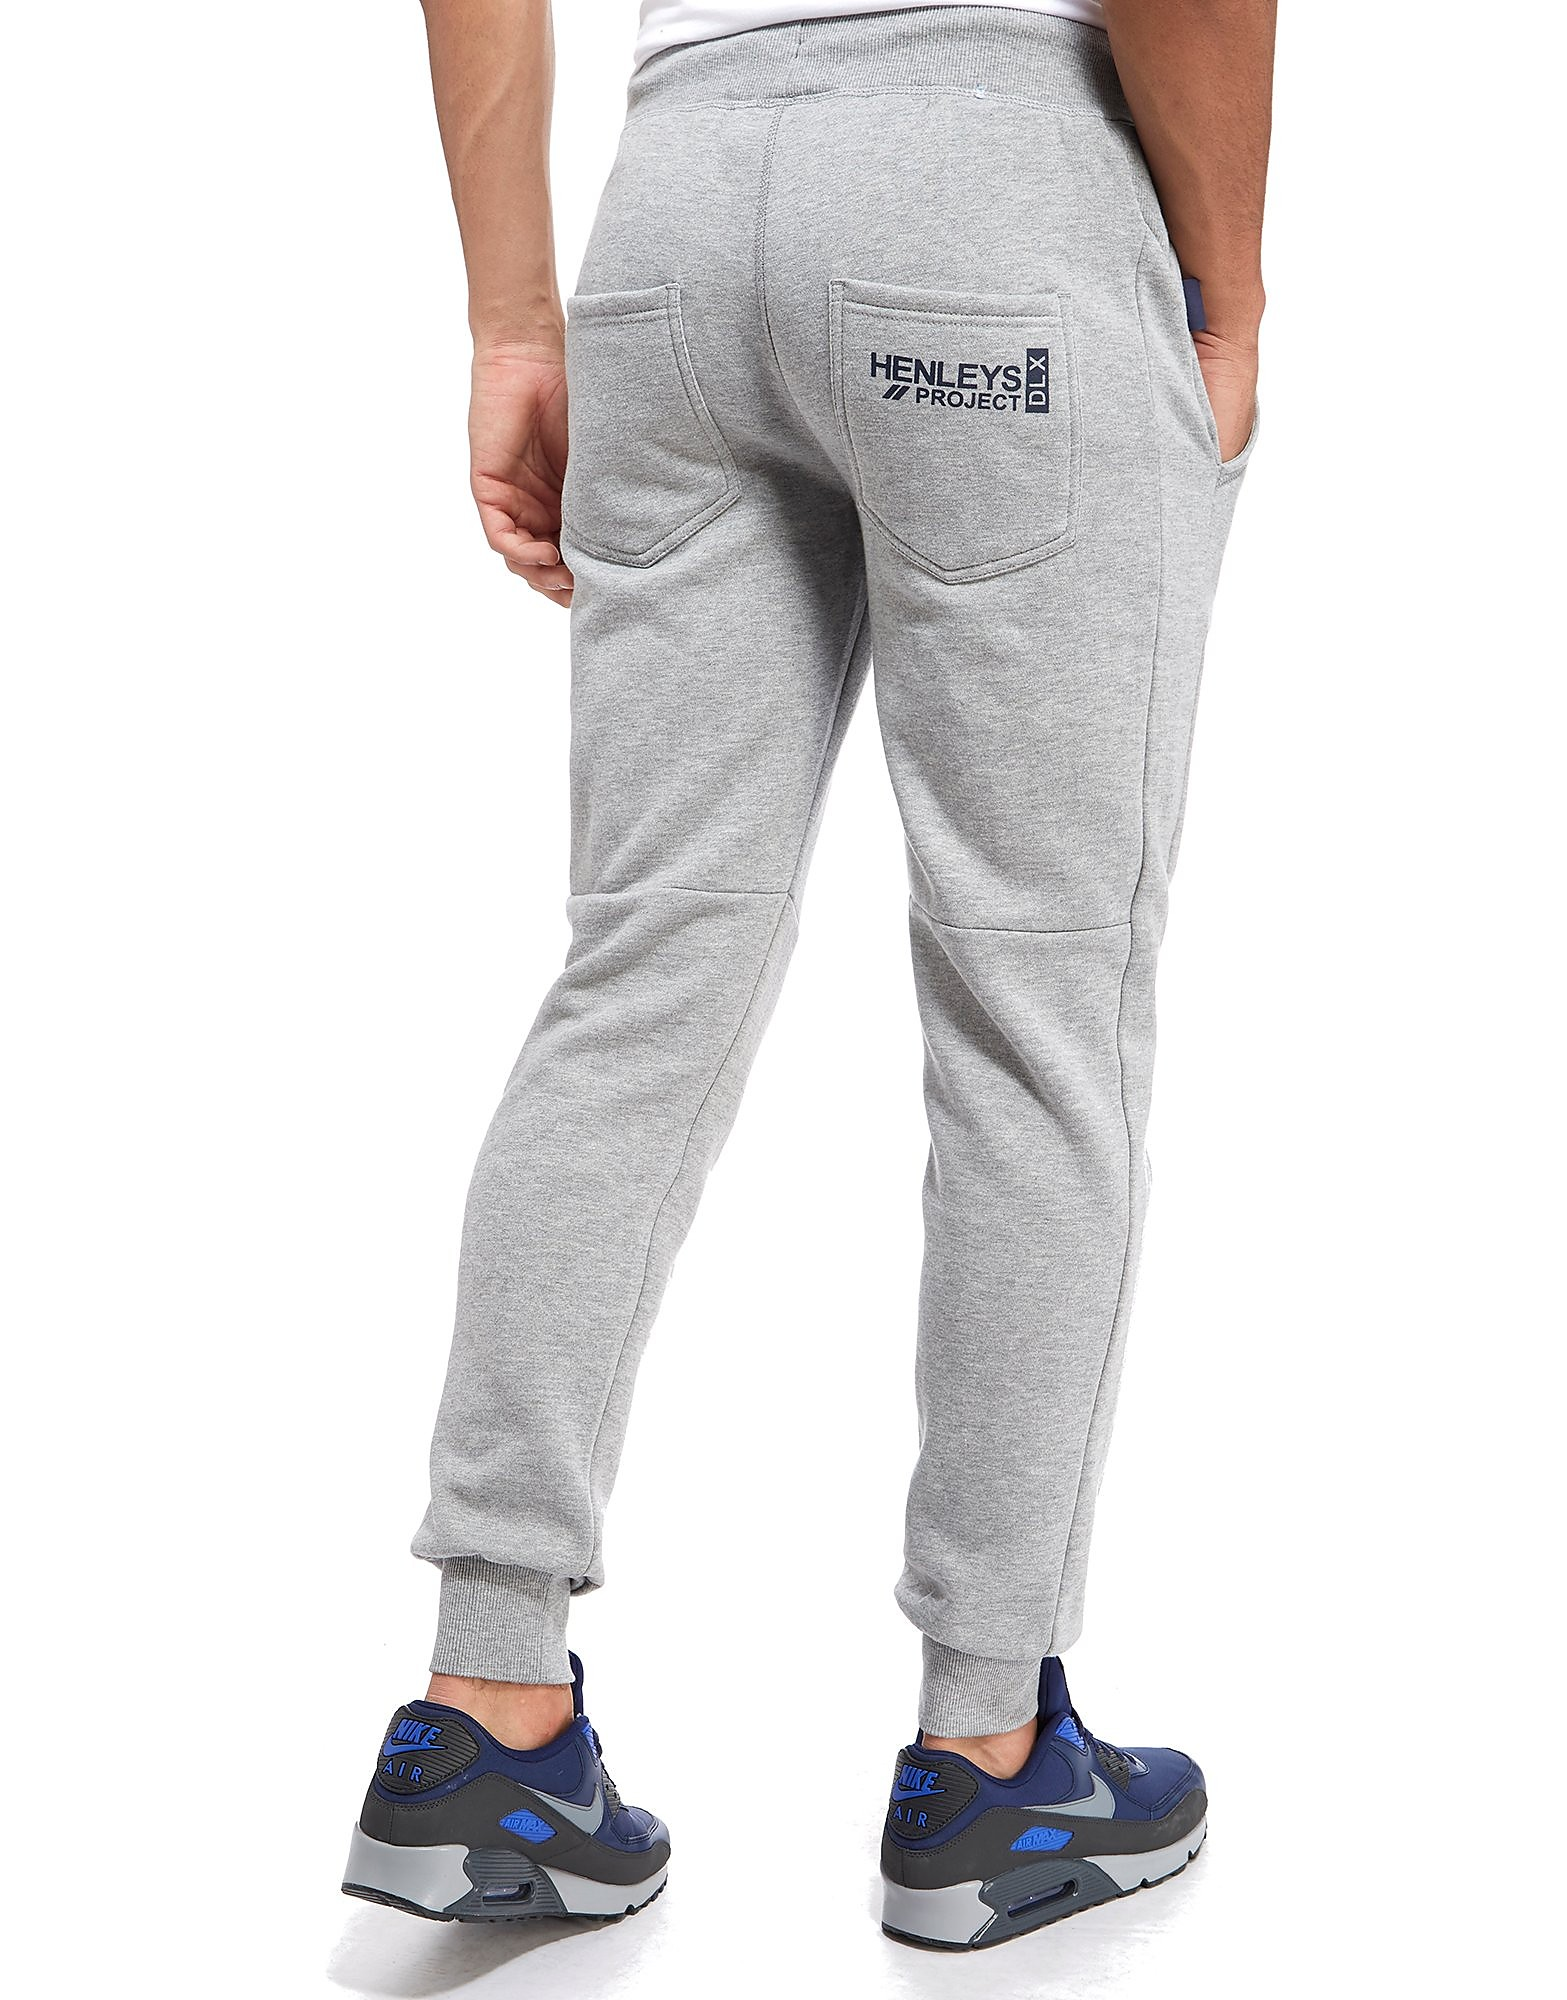 Henleys Extrct Fleece Pants